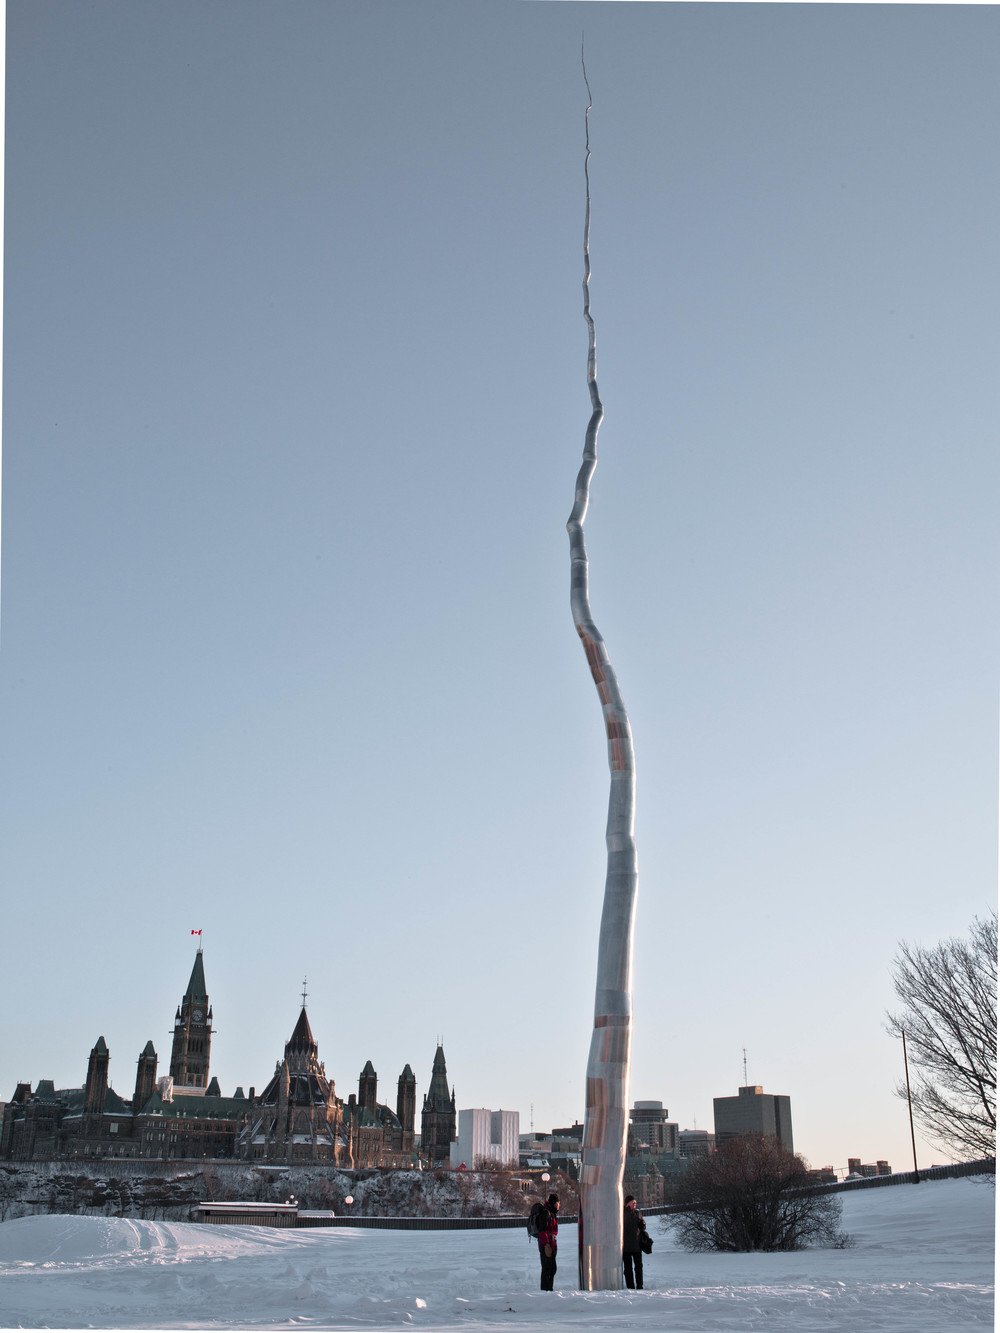 One Hundred Foot Line, 2010, Stainless steel, 103 x 8 x 10 feet   Located on the historica Napean Point and overlooking the Ottawa River,   One Hundred Foot Line   first began as the most controversial sculpture in the Dendroid series, to then after installation and viewing, becoming a widely praised public monument in the city.  With its soaring height,   One Hundred Foot Line   can be viewed from many locations throughout the city as a point of reference to the National Gallery of Canada, designed by architect Moshe Safdie.  A most significant piece in the trajectory of the Dendroid series,   One Hundred Foot Line   is the contrary collision between utilitarianism and the sublime, whilst also representing a distilling of the Dendritic form into its (seemingly) simplest manifestation.